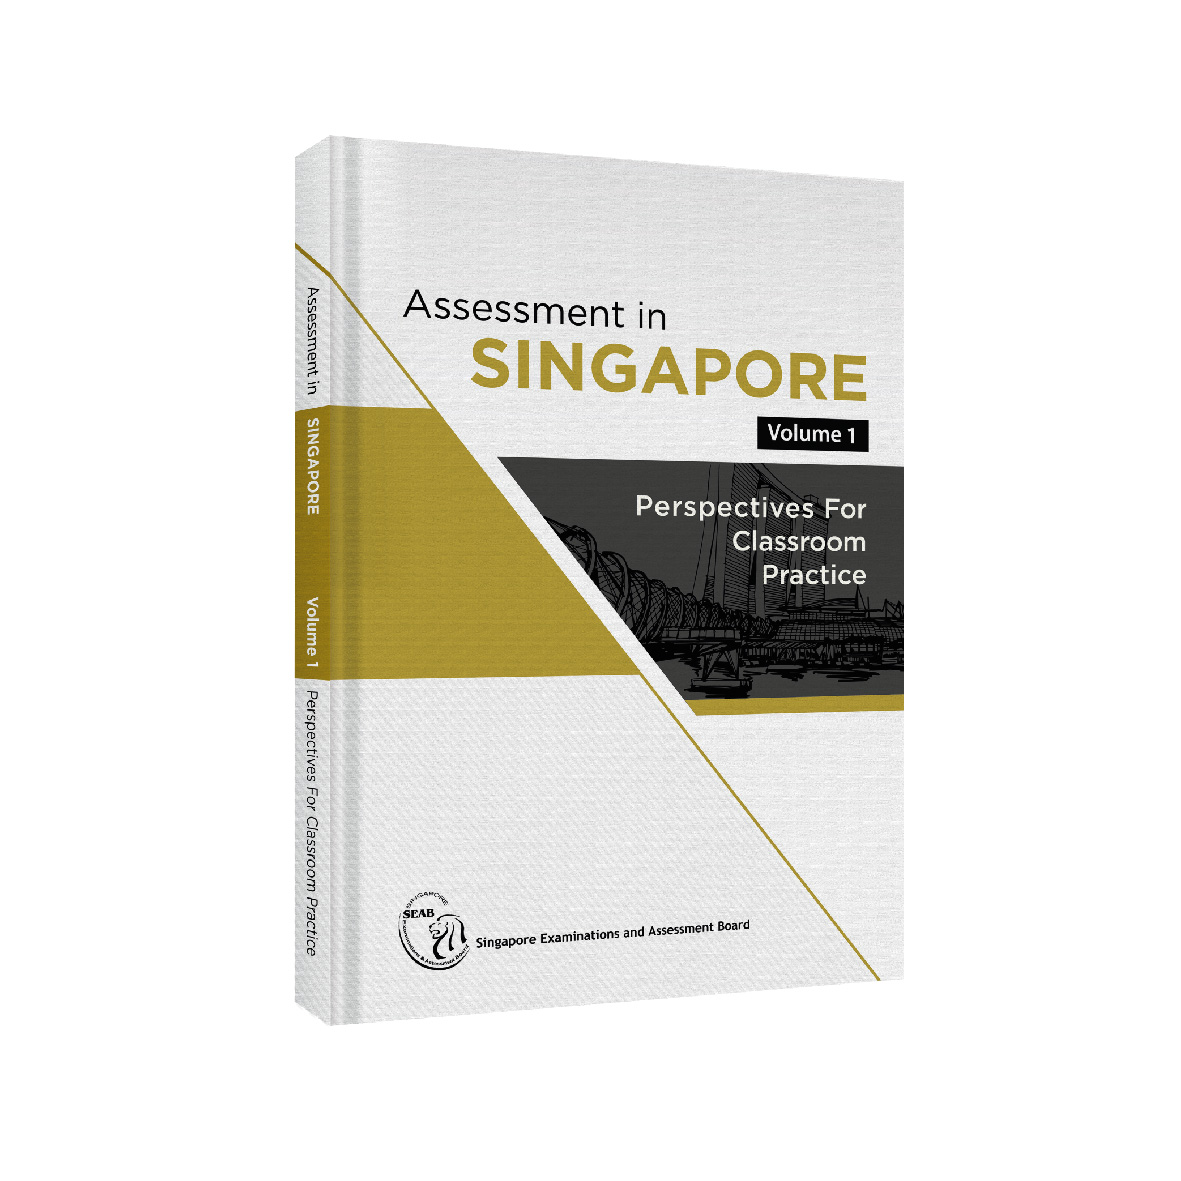 Assessment in Singapore Vol.1